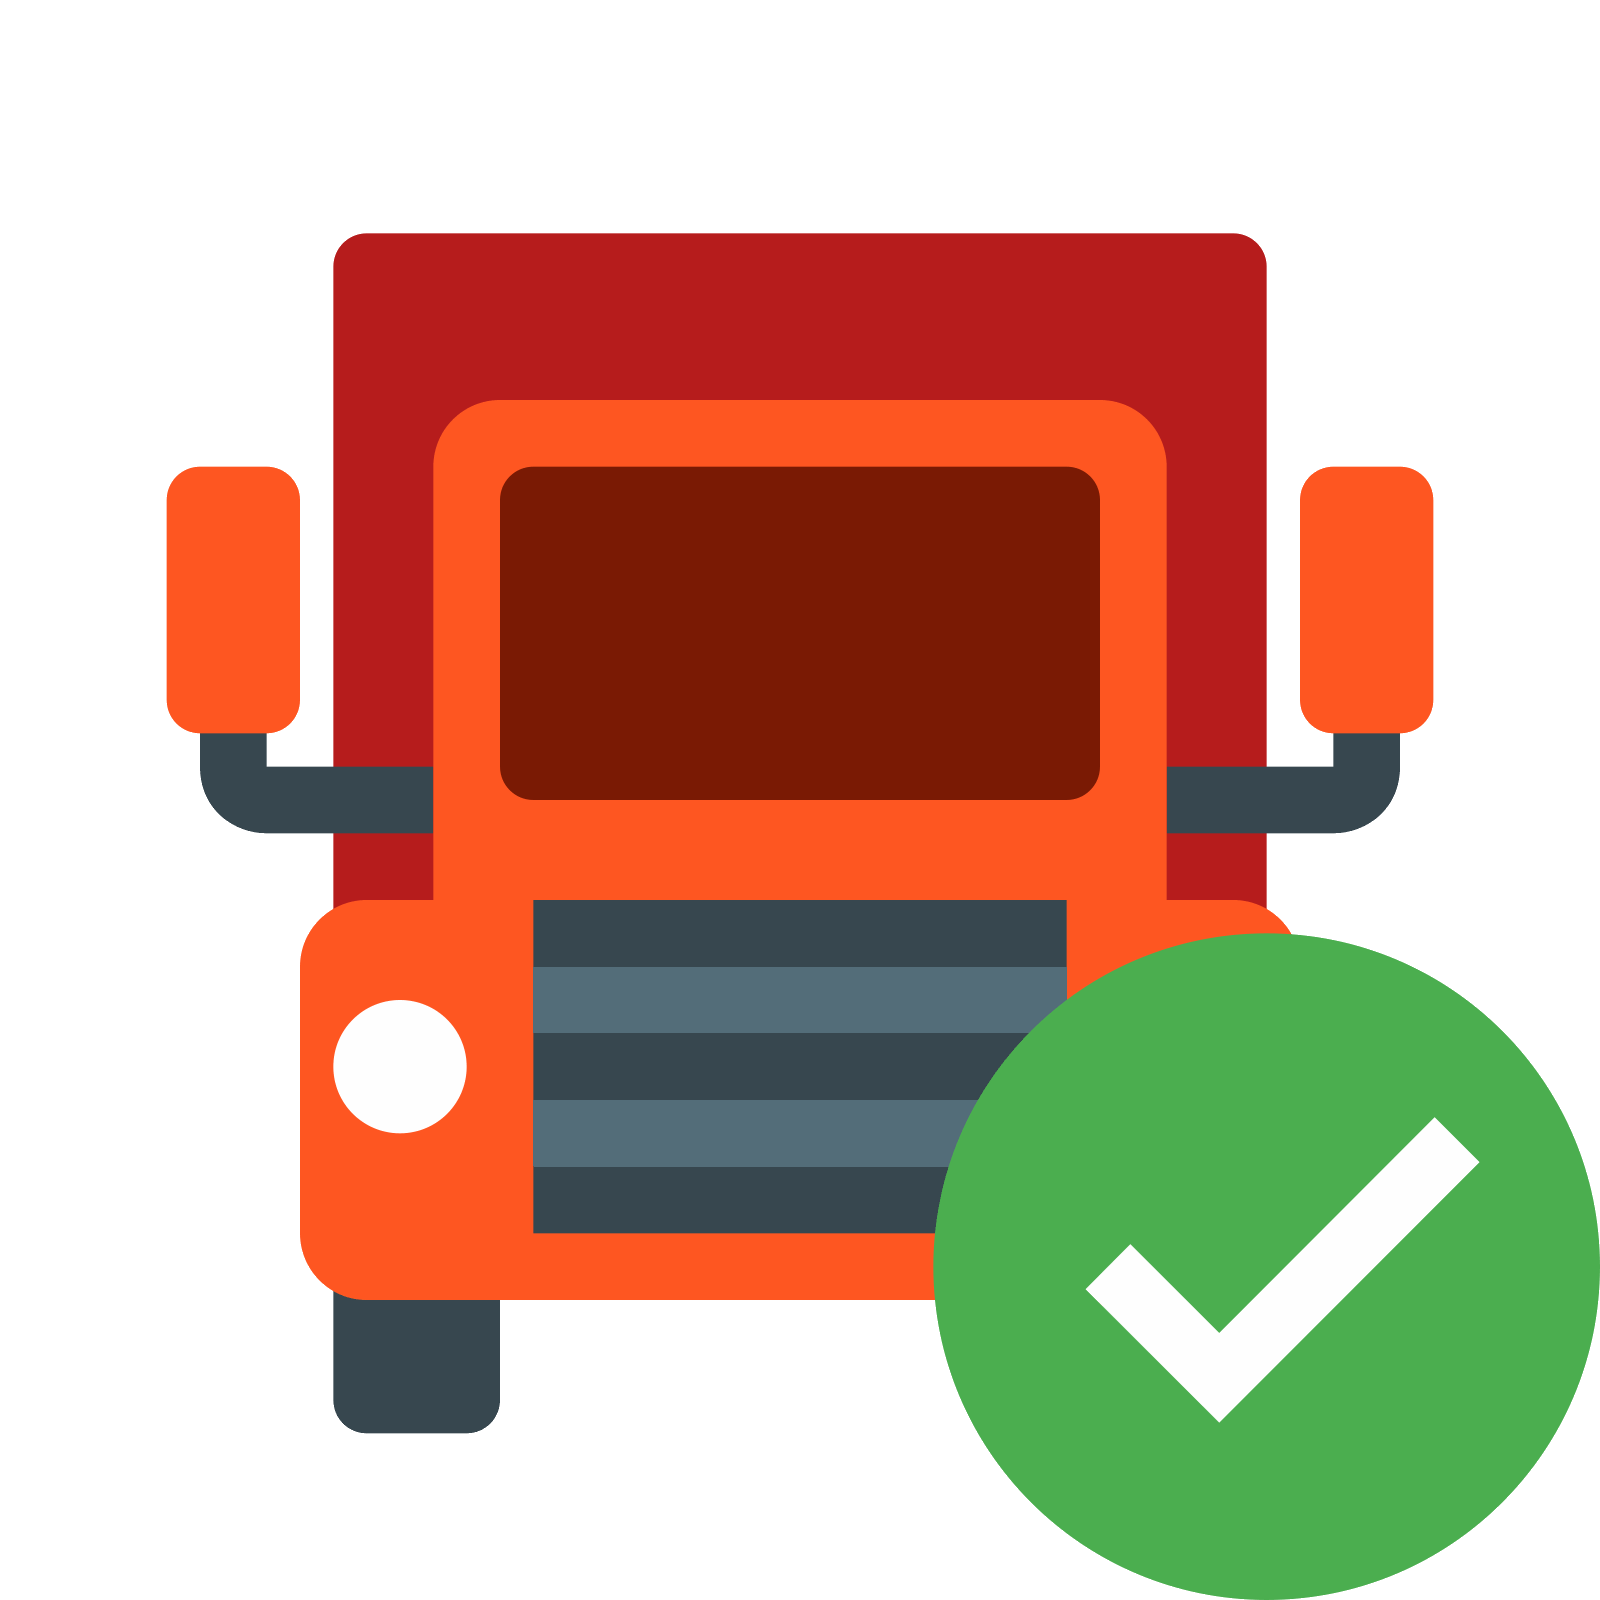 Truck vector png. Delivered icon free download